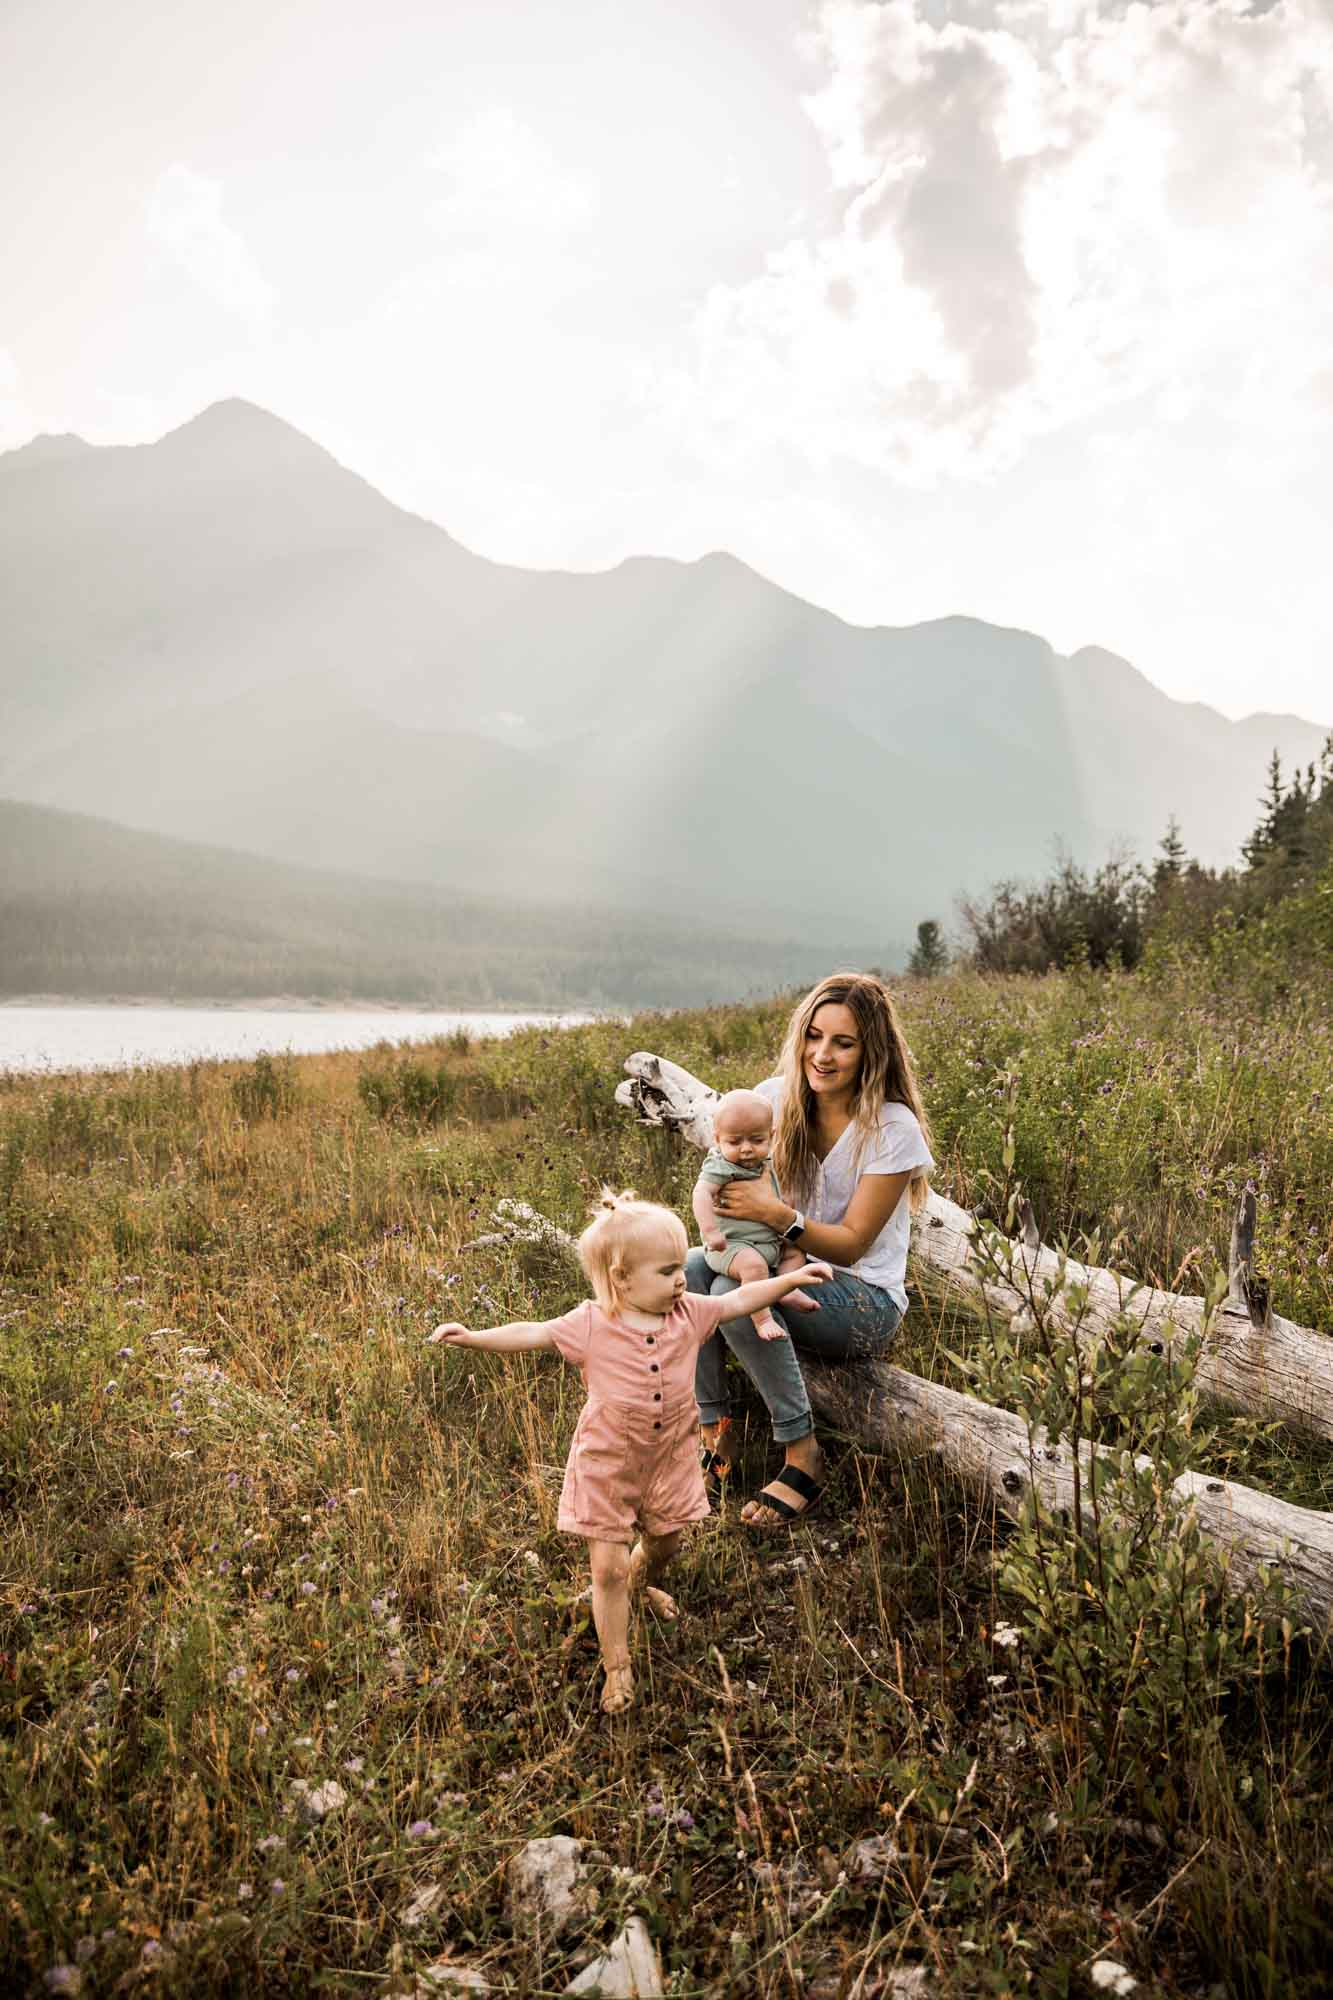 Calgary lifestyle family photographer, family photos by the water and mountains at sunset in Kananaskis Country